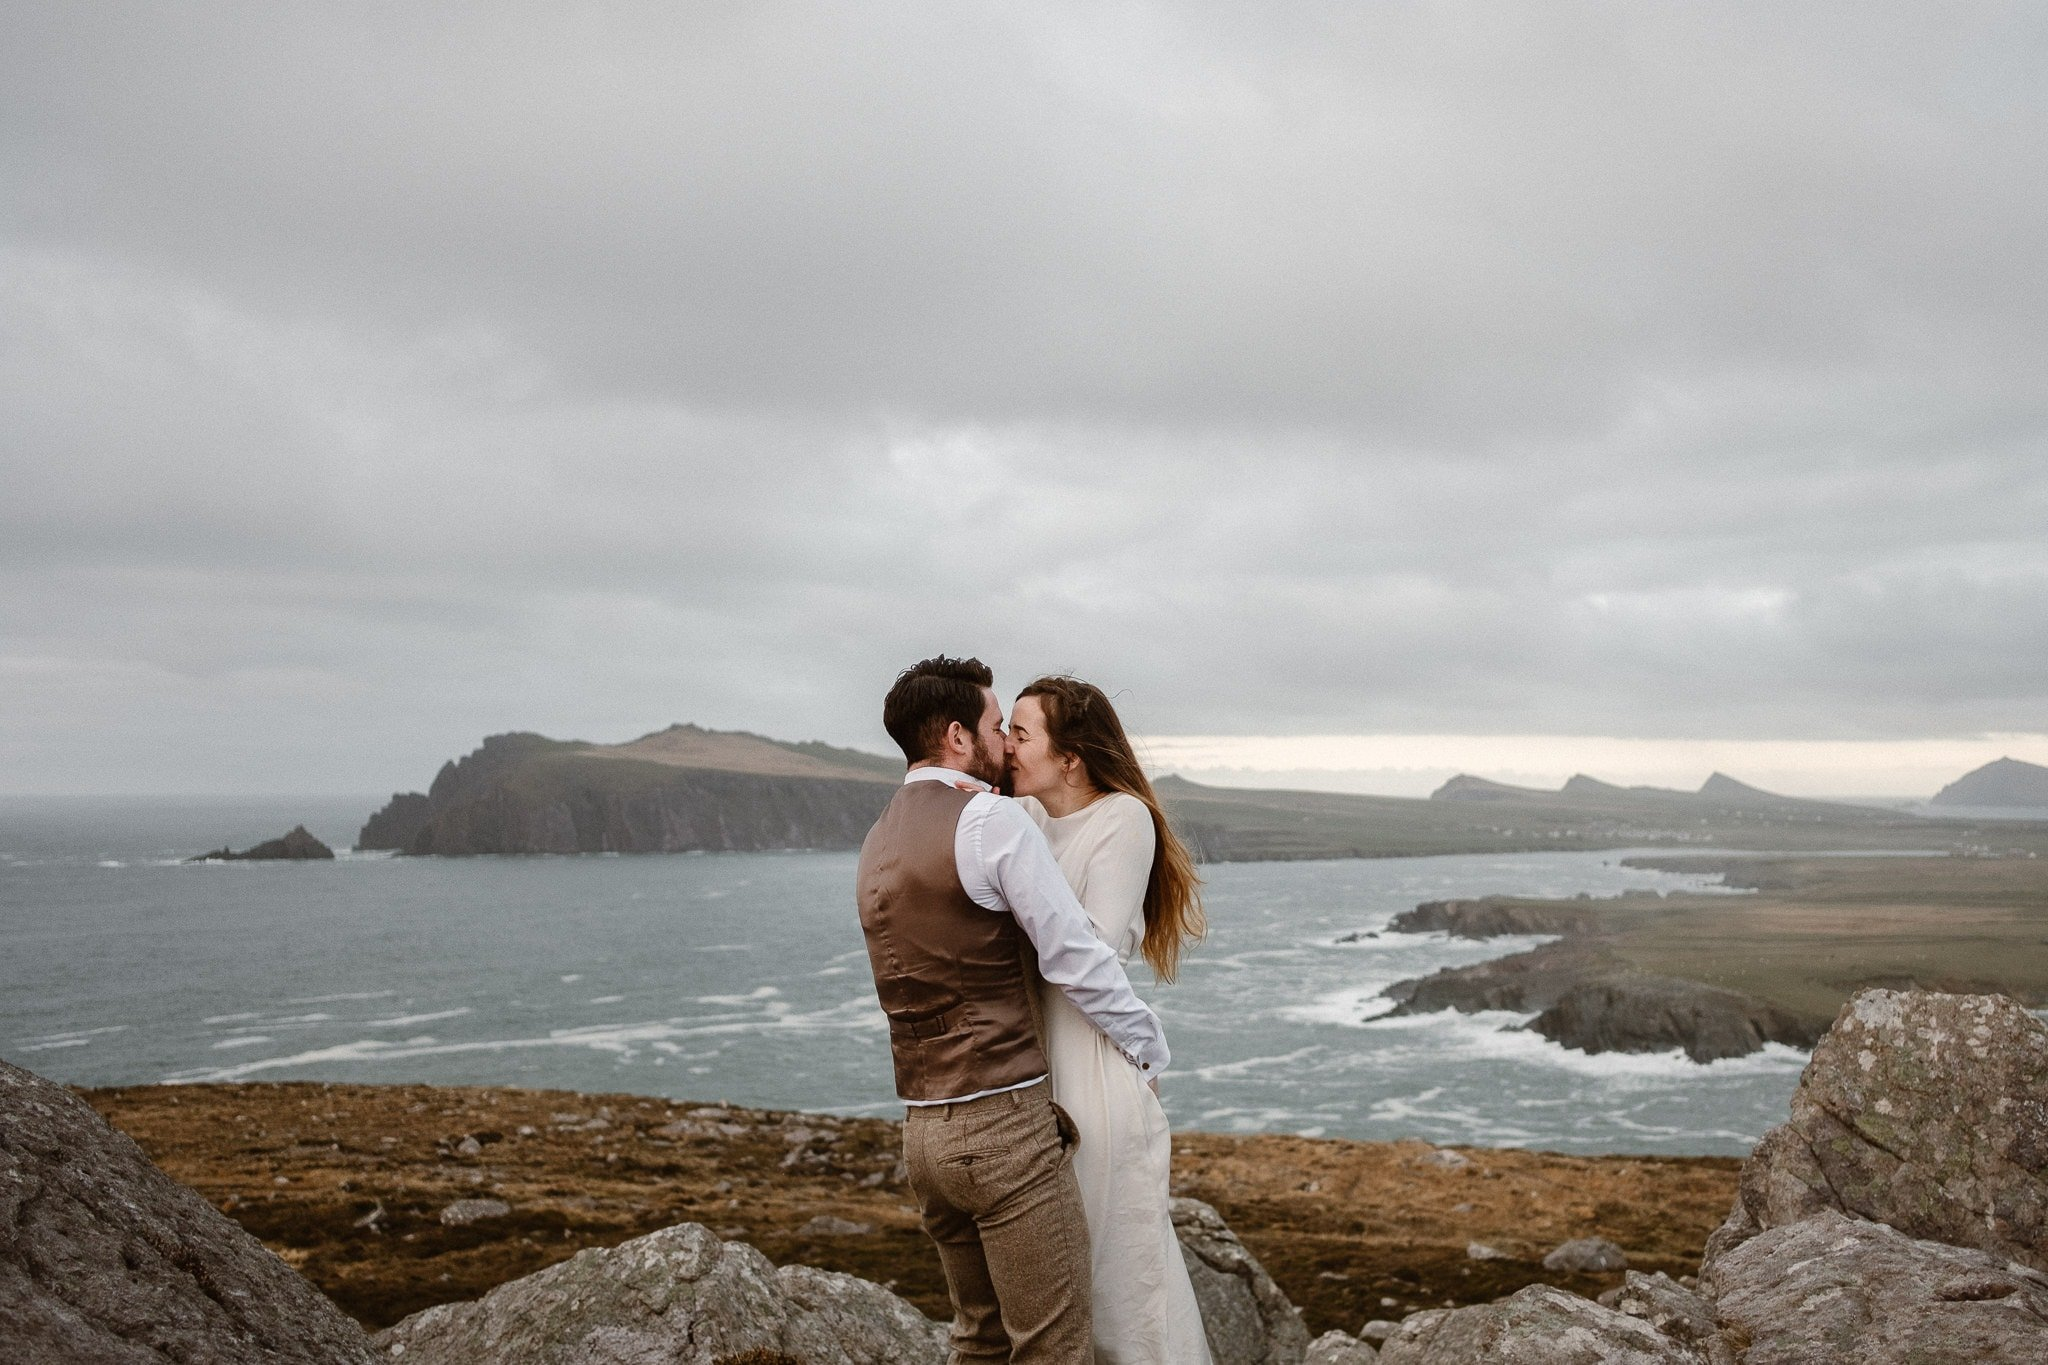 Dingle Peninsula wedding photographer, Slea Head elopement photographer, Irish adventure elopement, Ireland destination wedding photographer